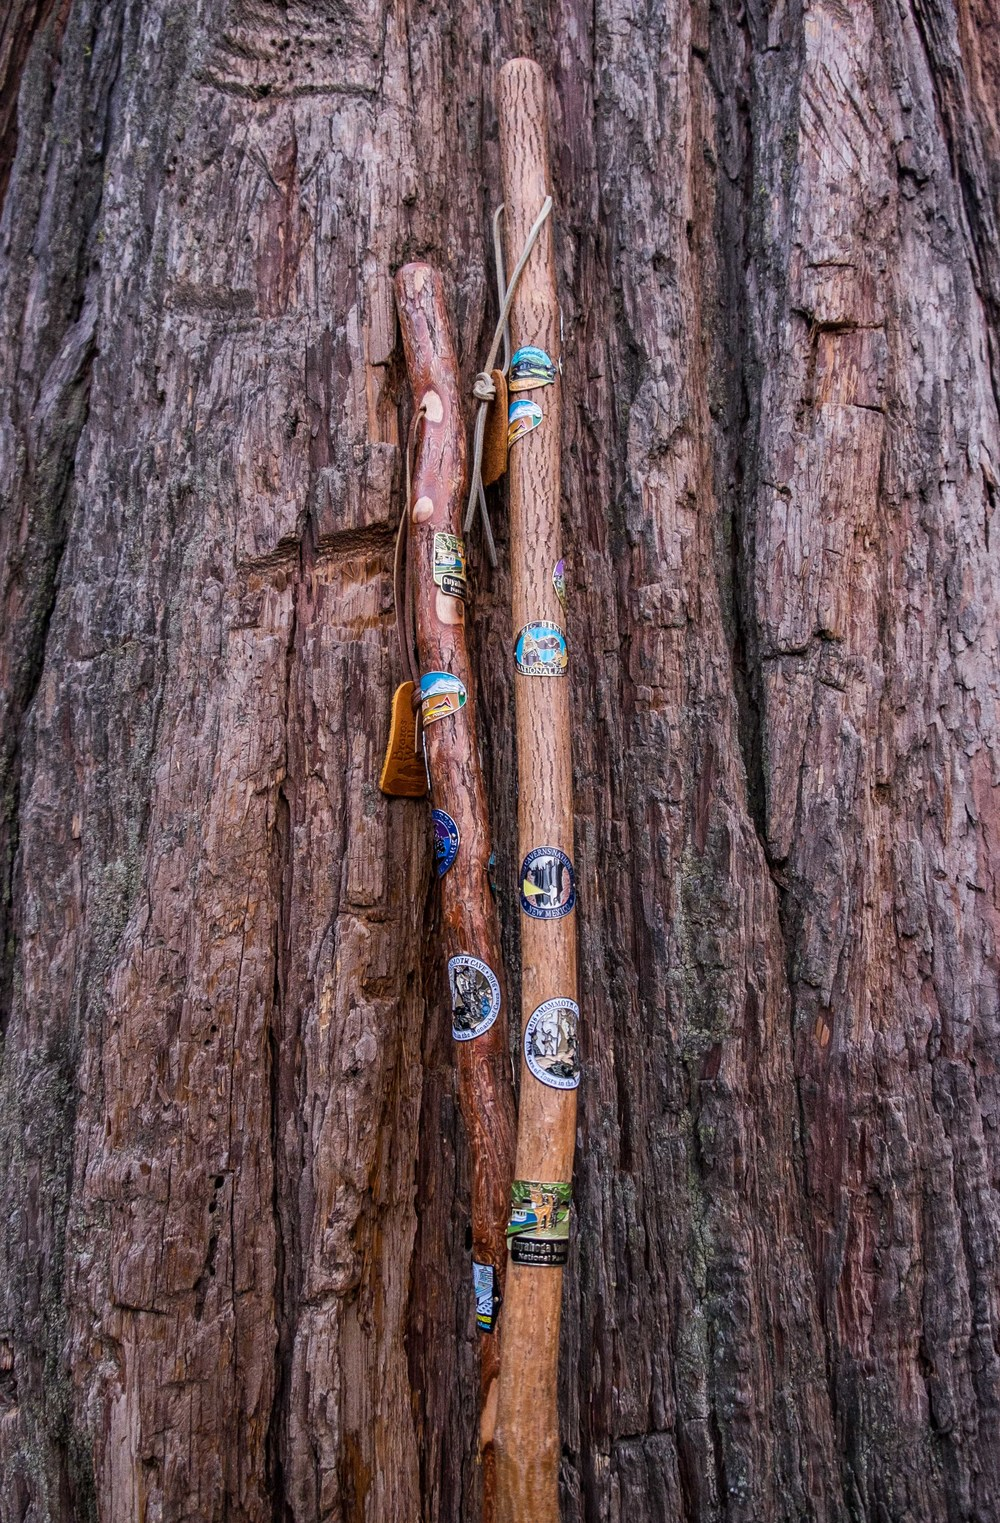 We're collecting hiking stick medallions from all of the parks.